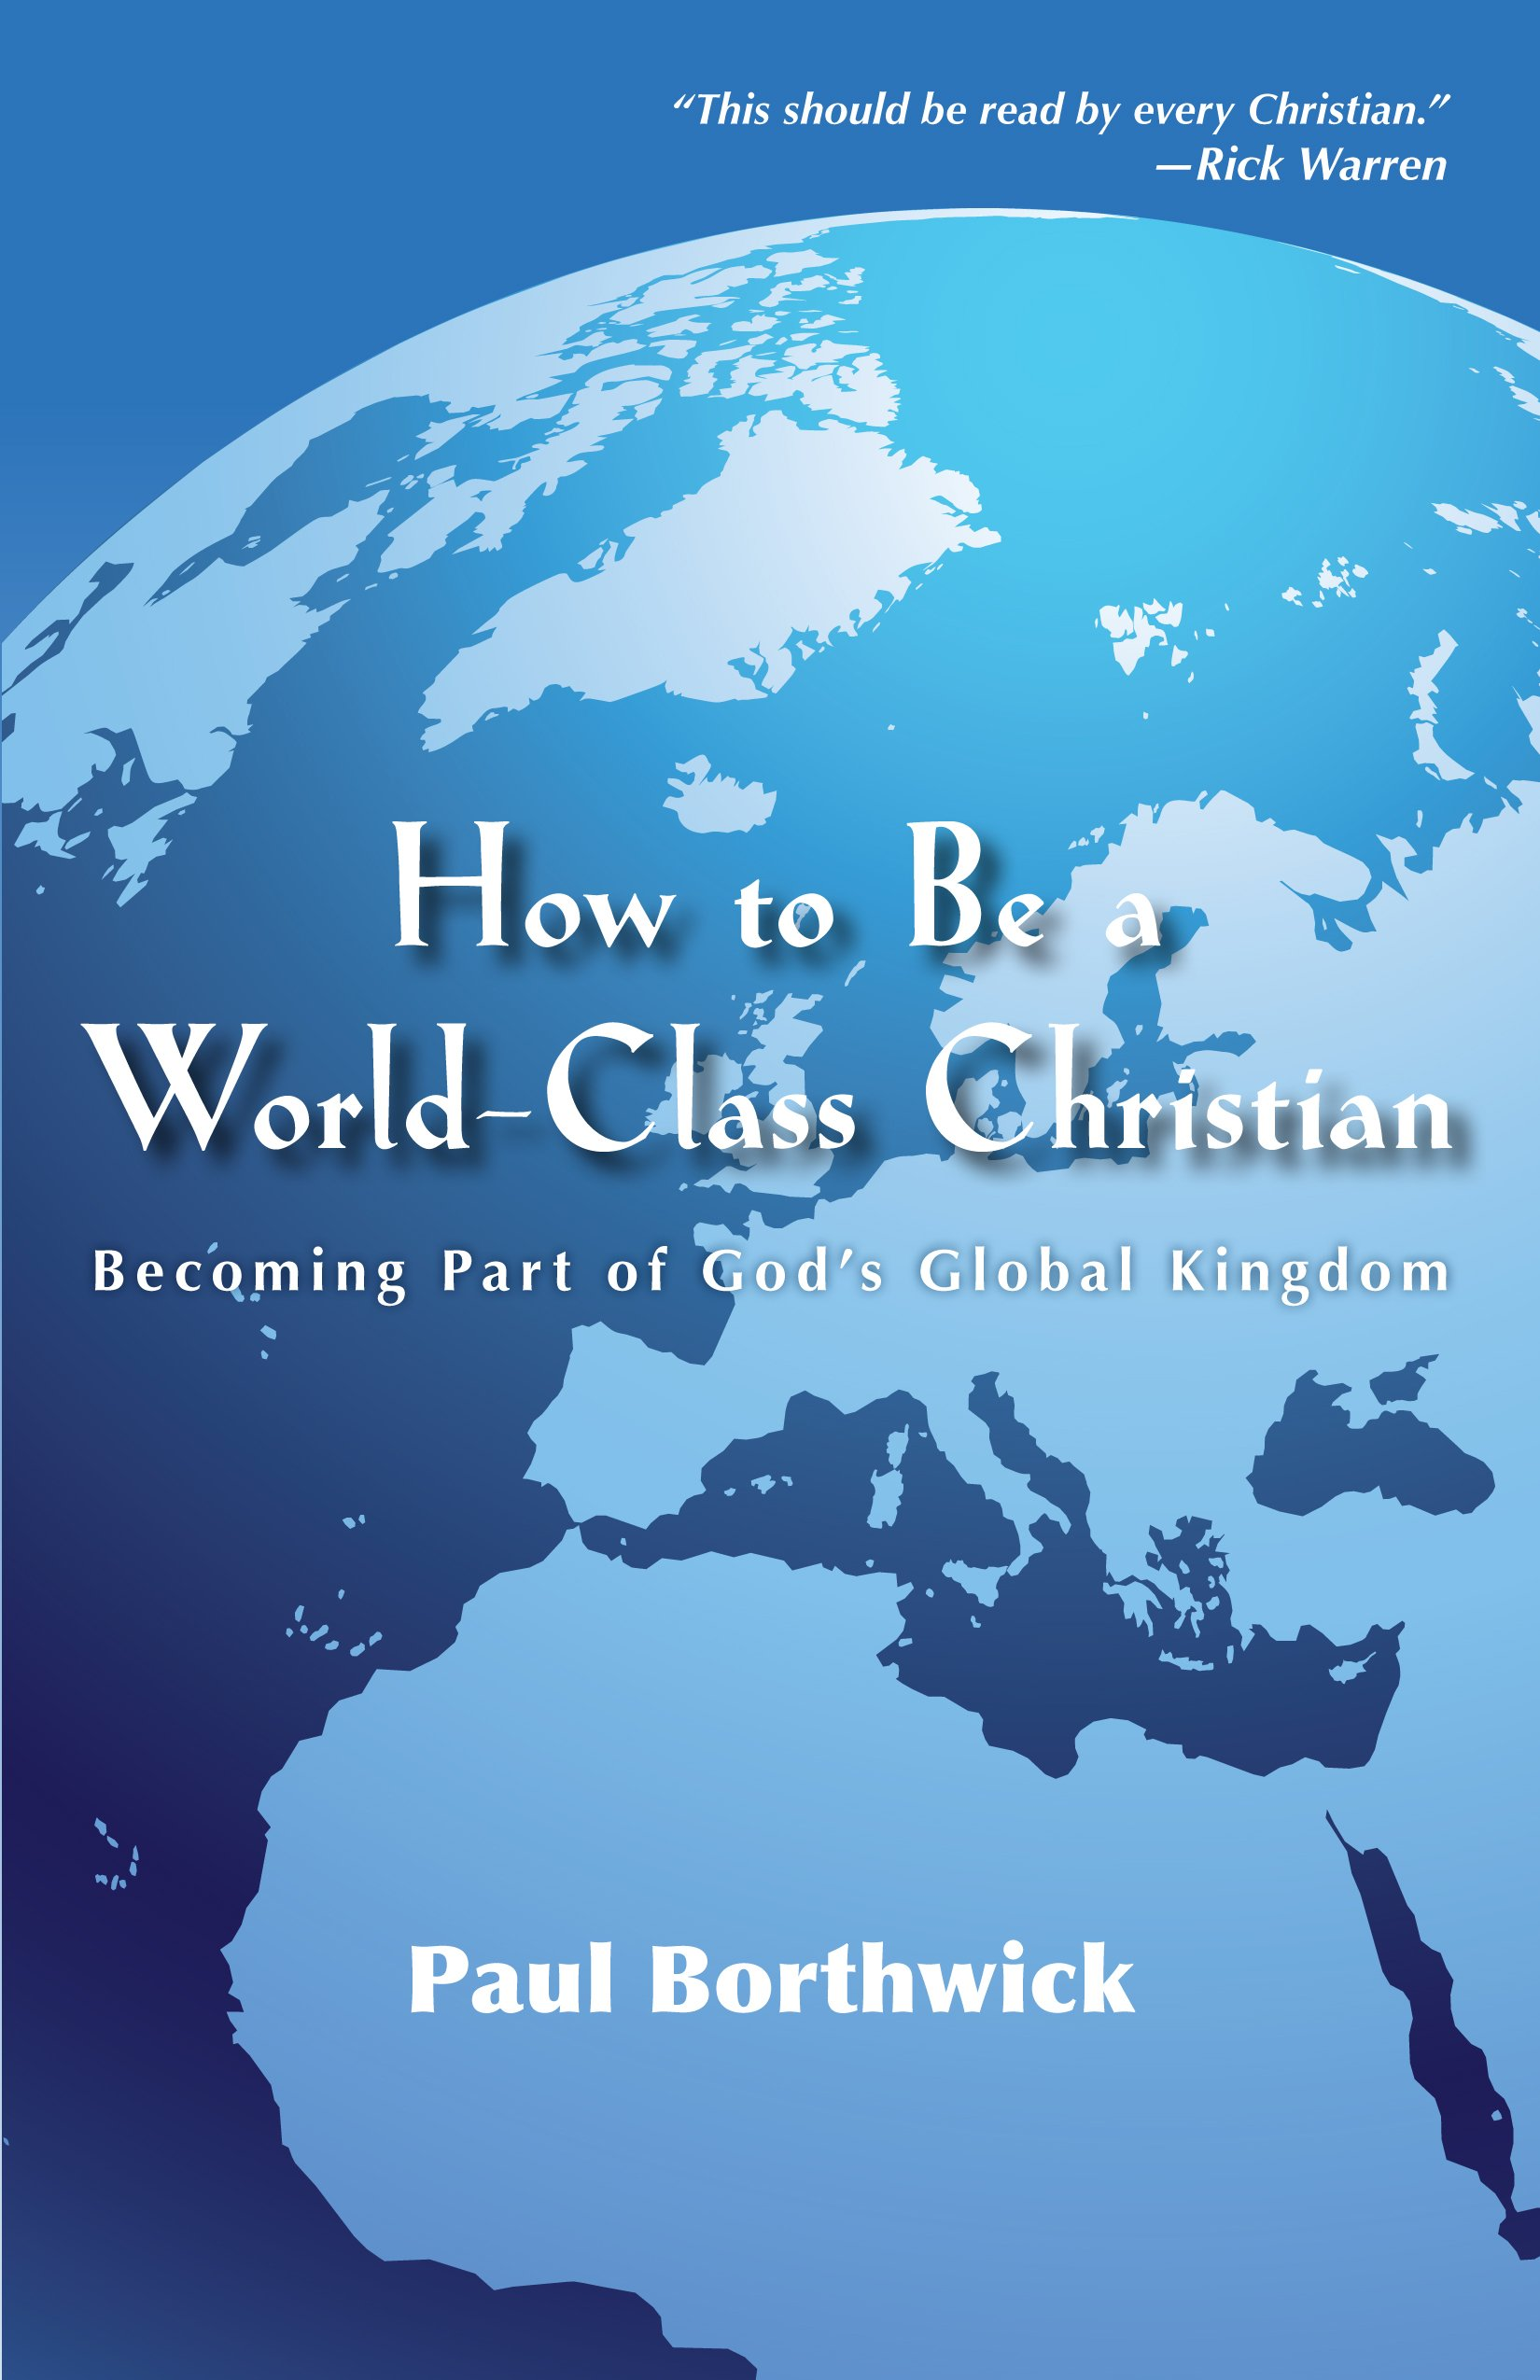 How To Be A World-Class Christian: Becoming Part of Gods Global Kingdom